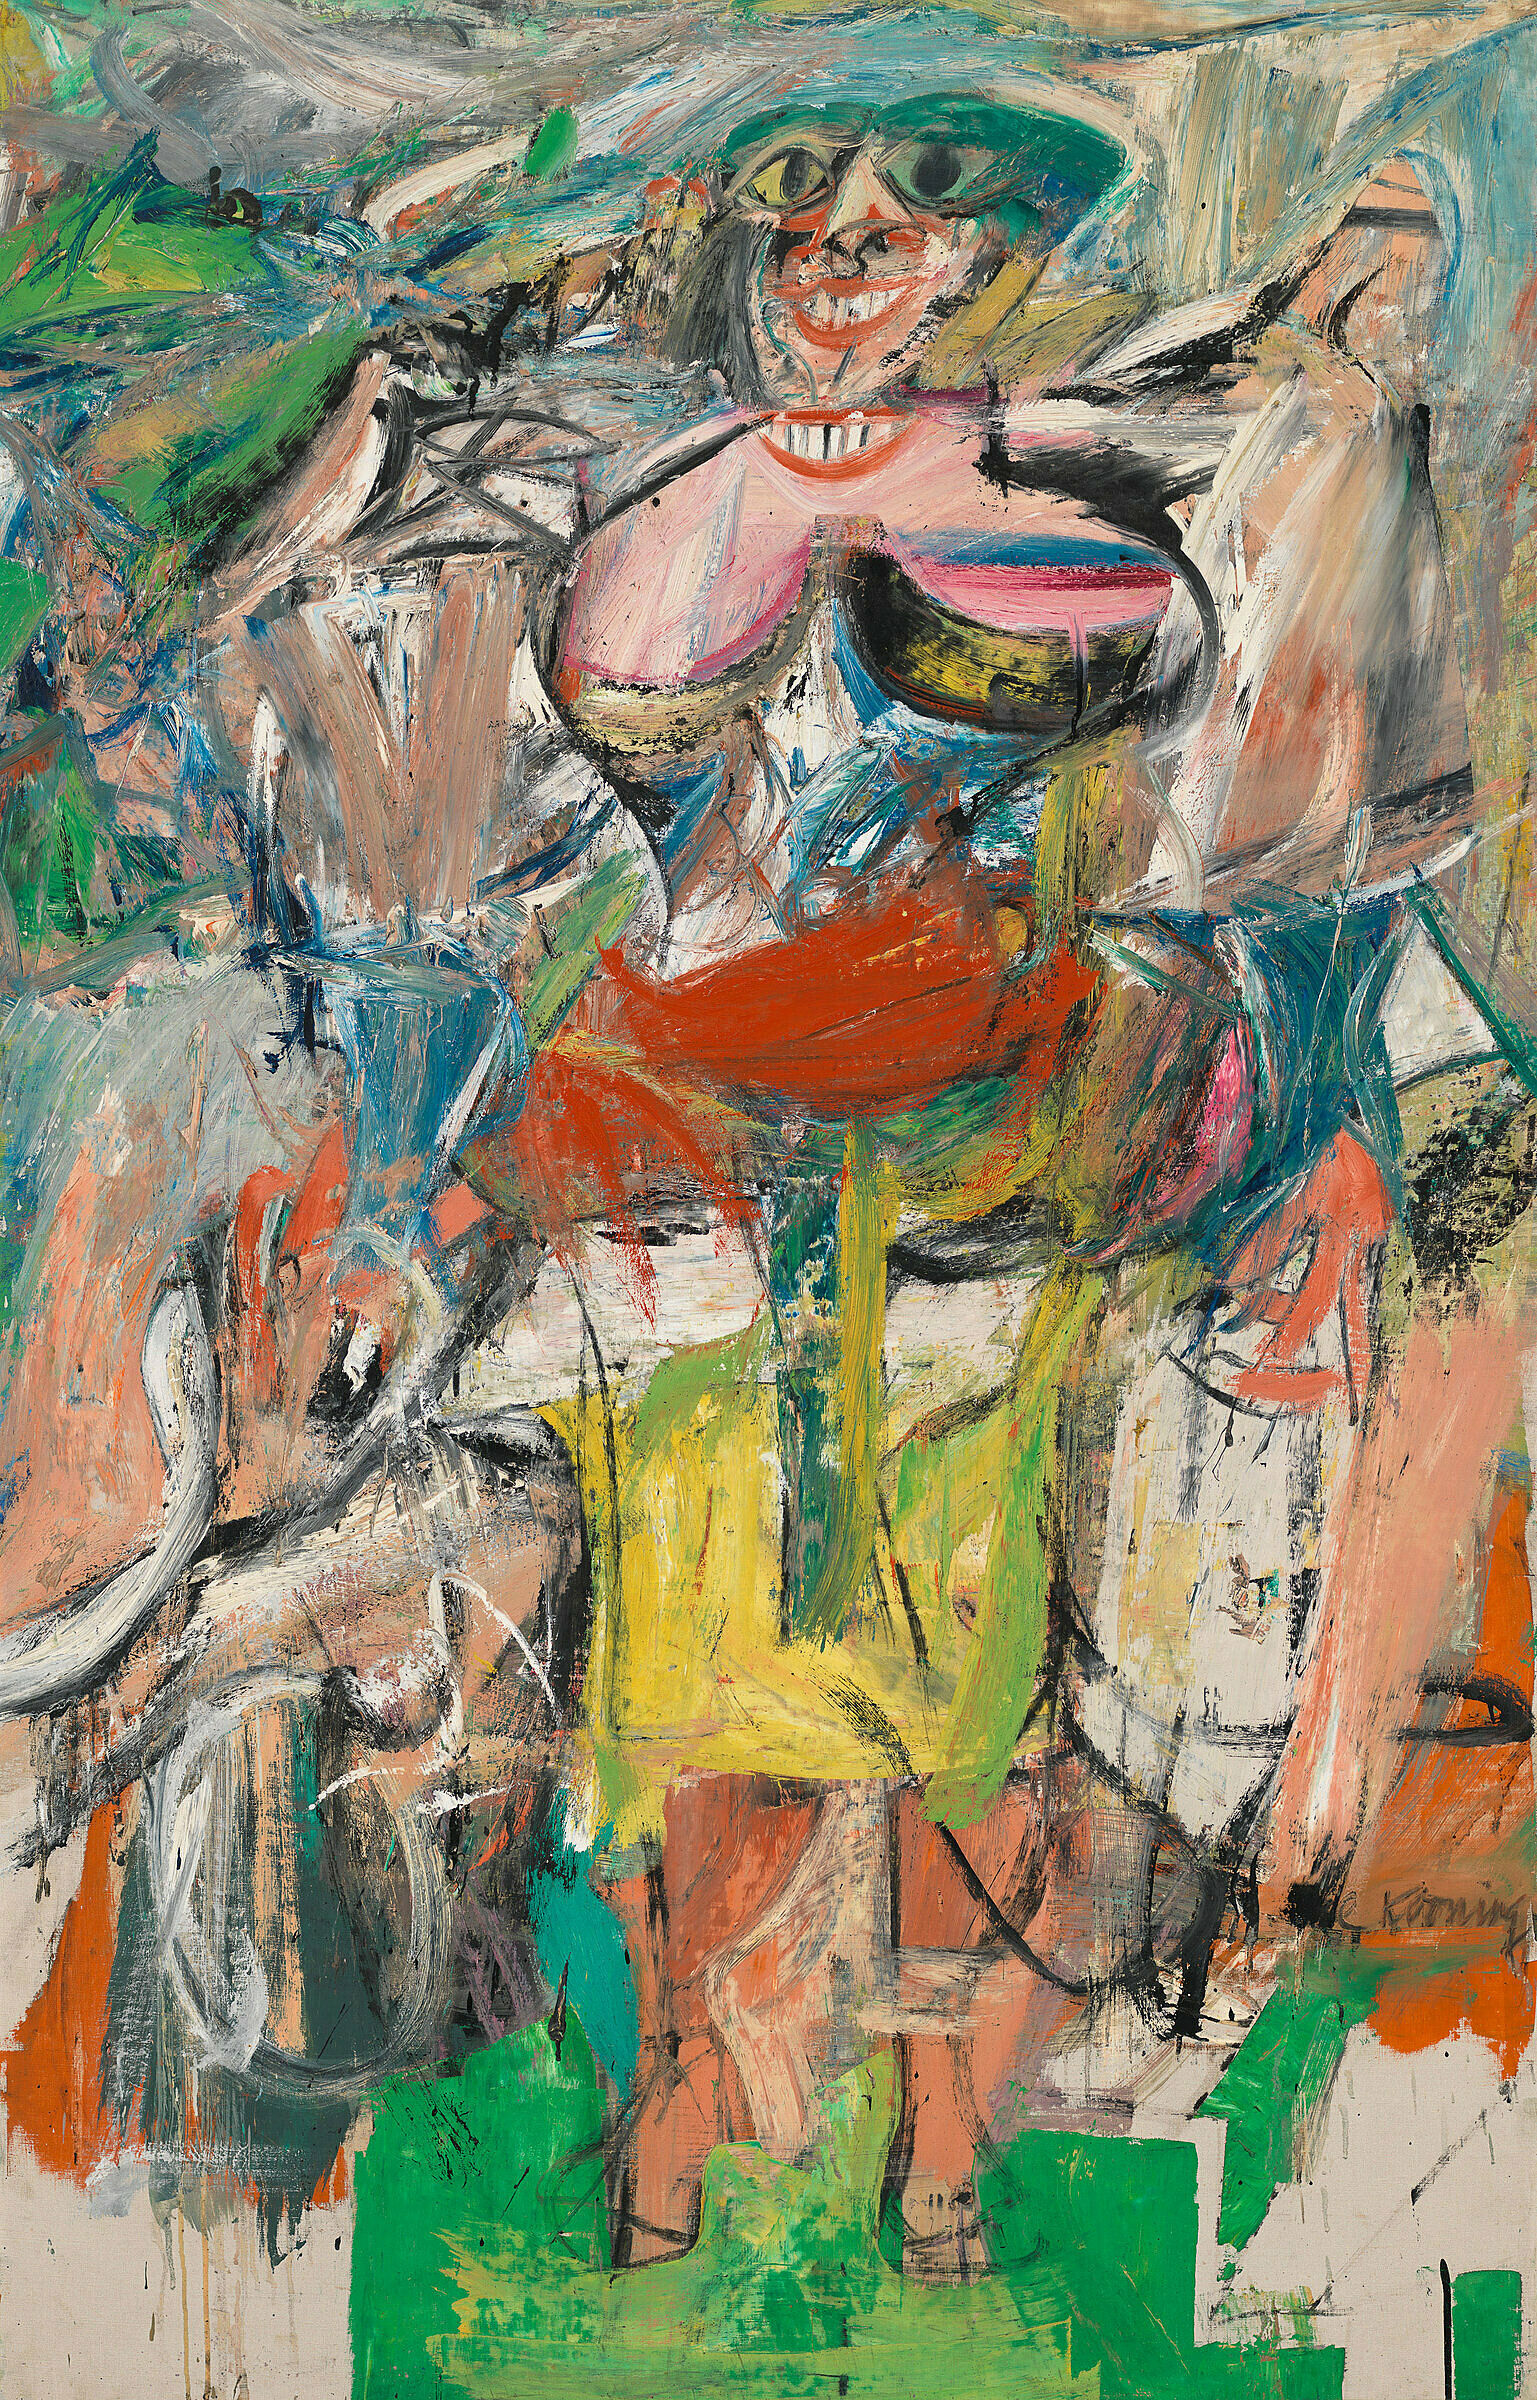 A work by Willem de Kooning. An abstract painting of a woman with a bicycle depicted in vivid colors